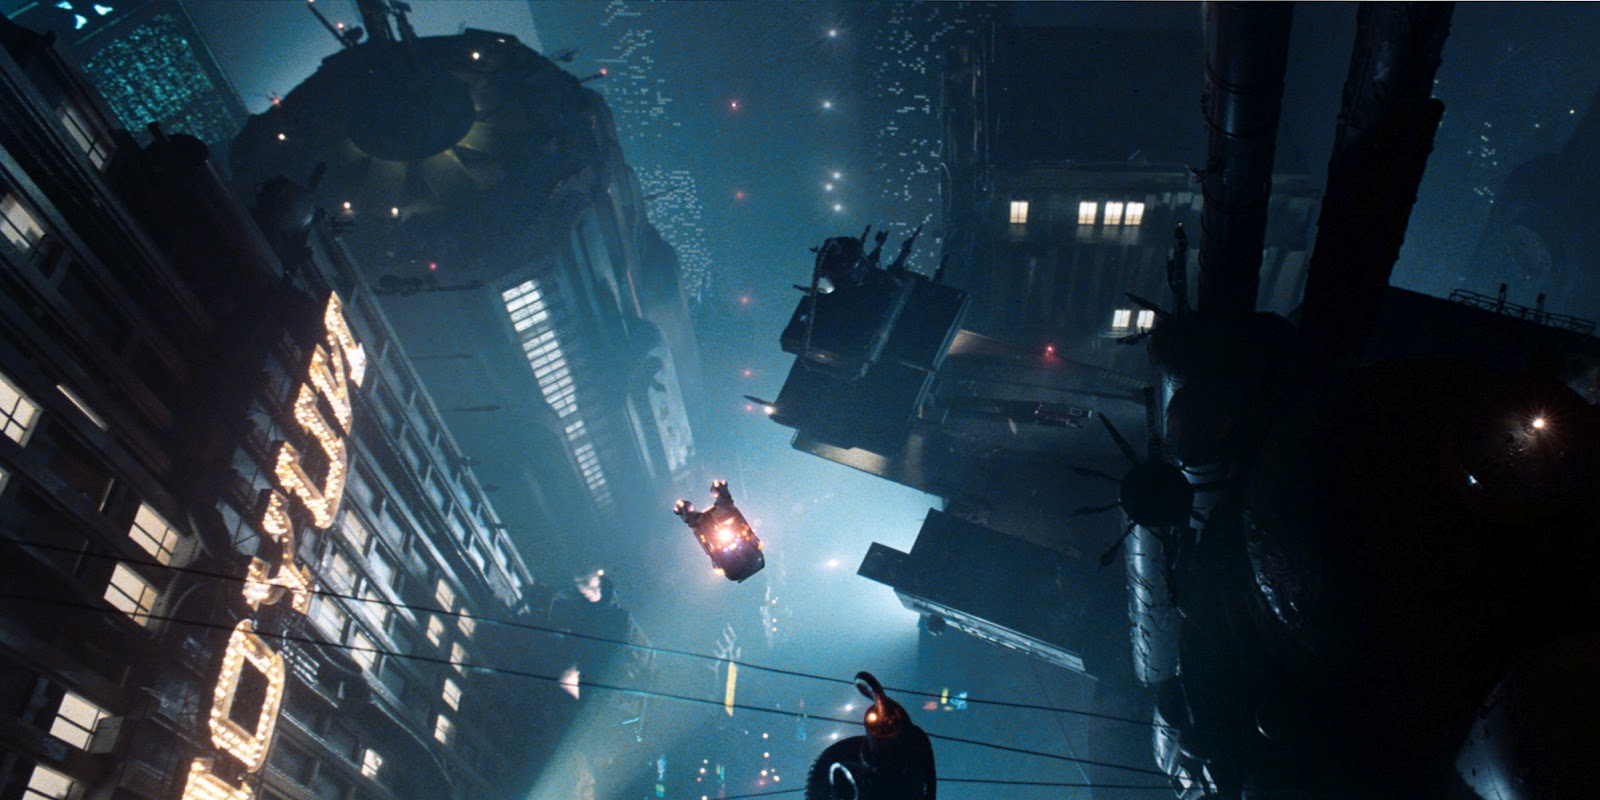 Blade Runner Essay in house employment lawyer cover letter